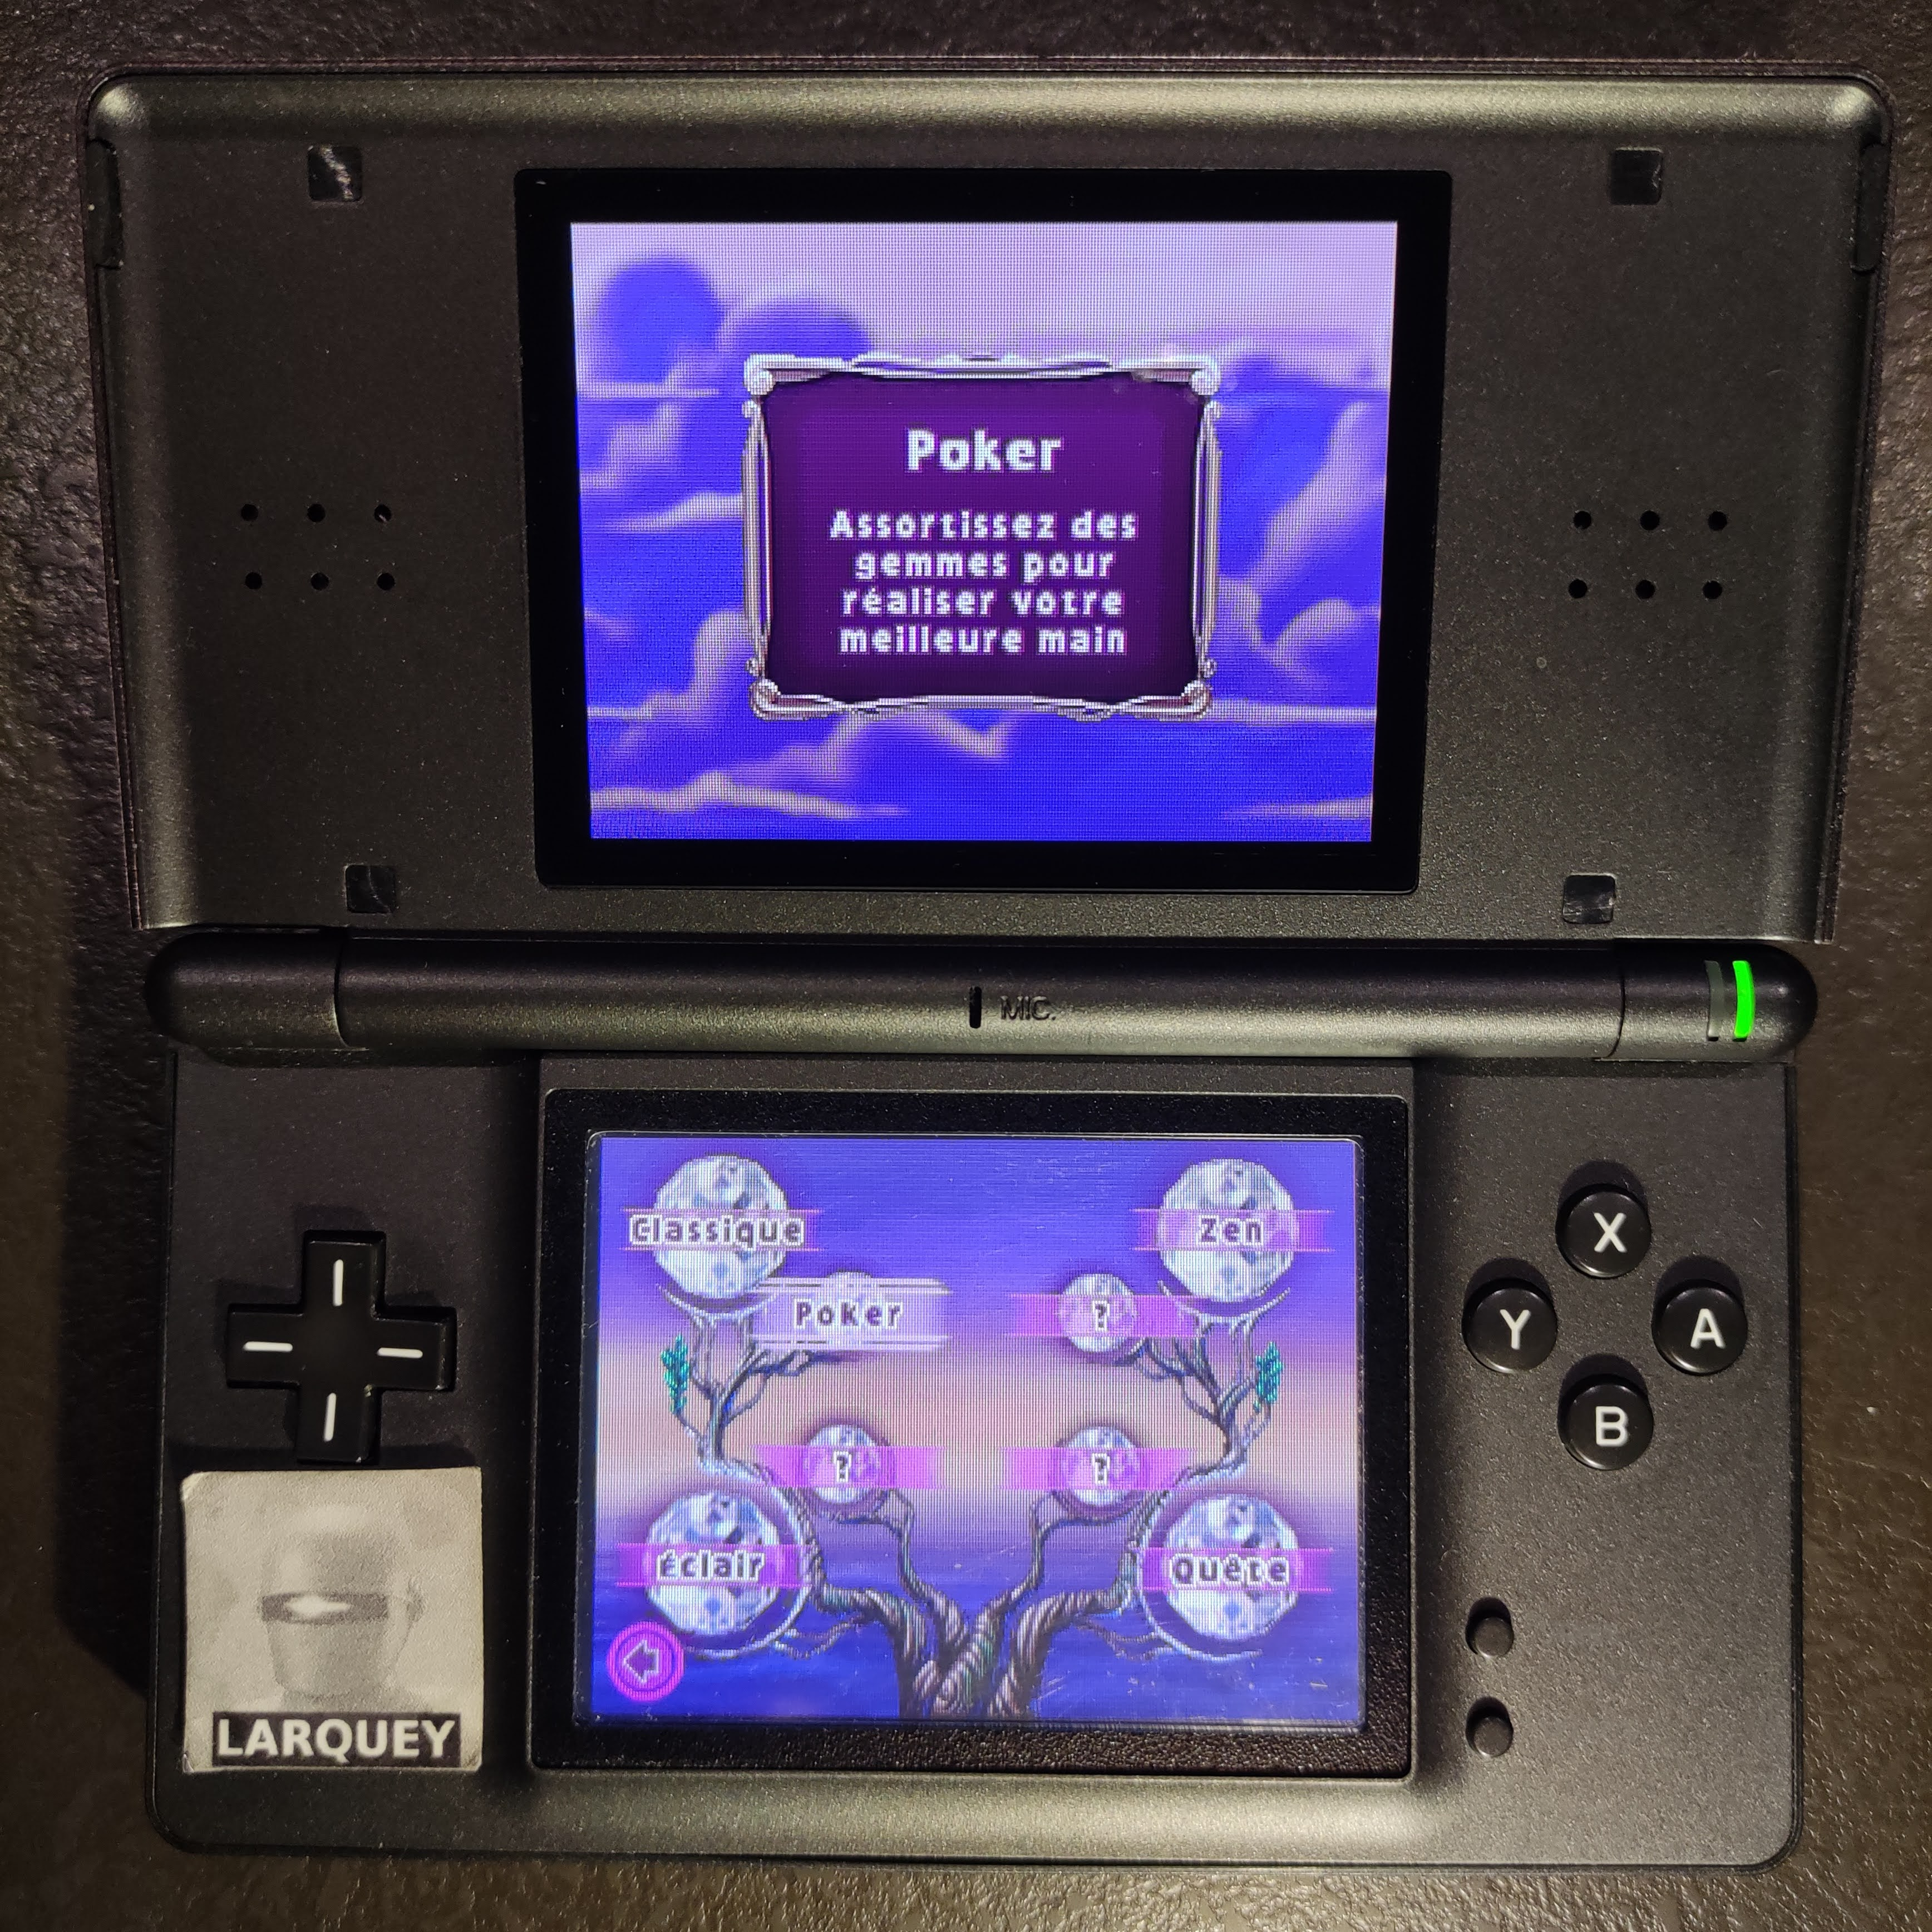 Larquey: Bejeweled 3: Poker [Number of Full House] (Nintendo DS) 1 points on 2020-09-26 04:21:57